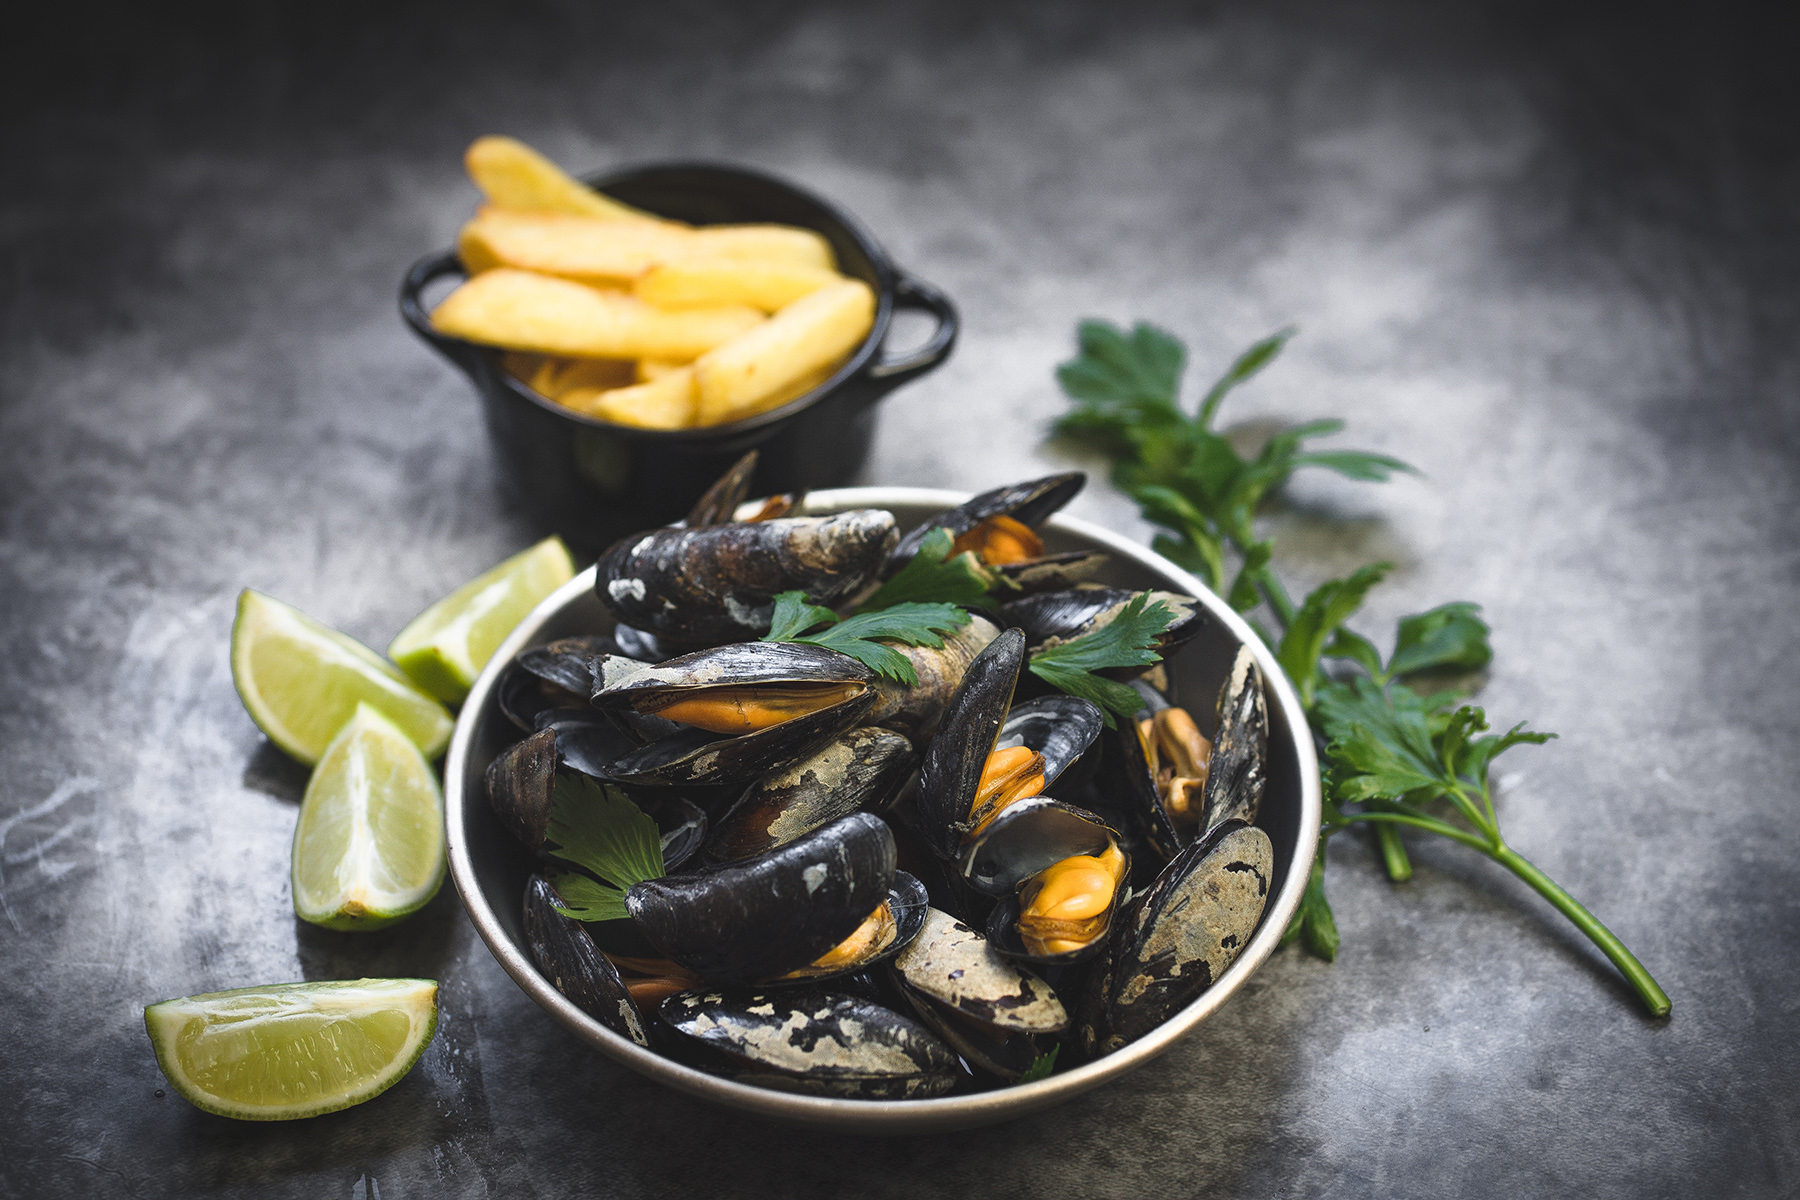 A serving of Belgian moules frites